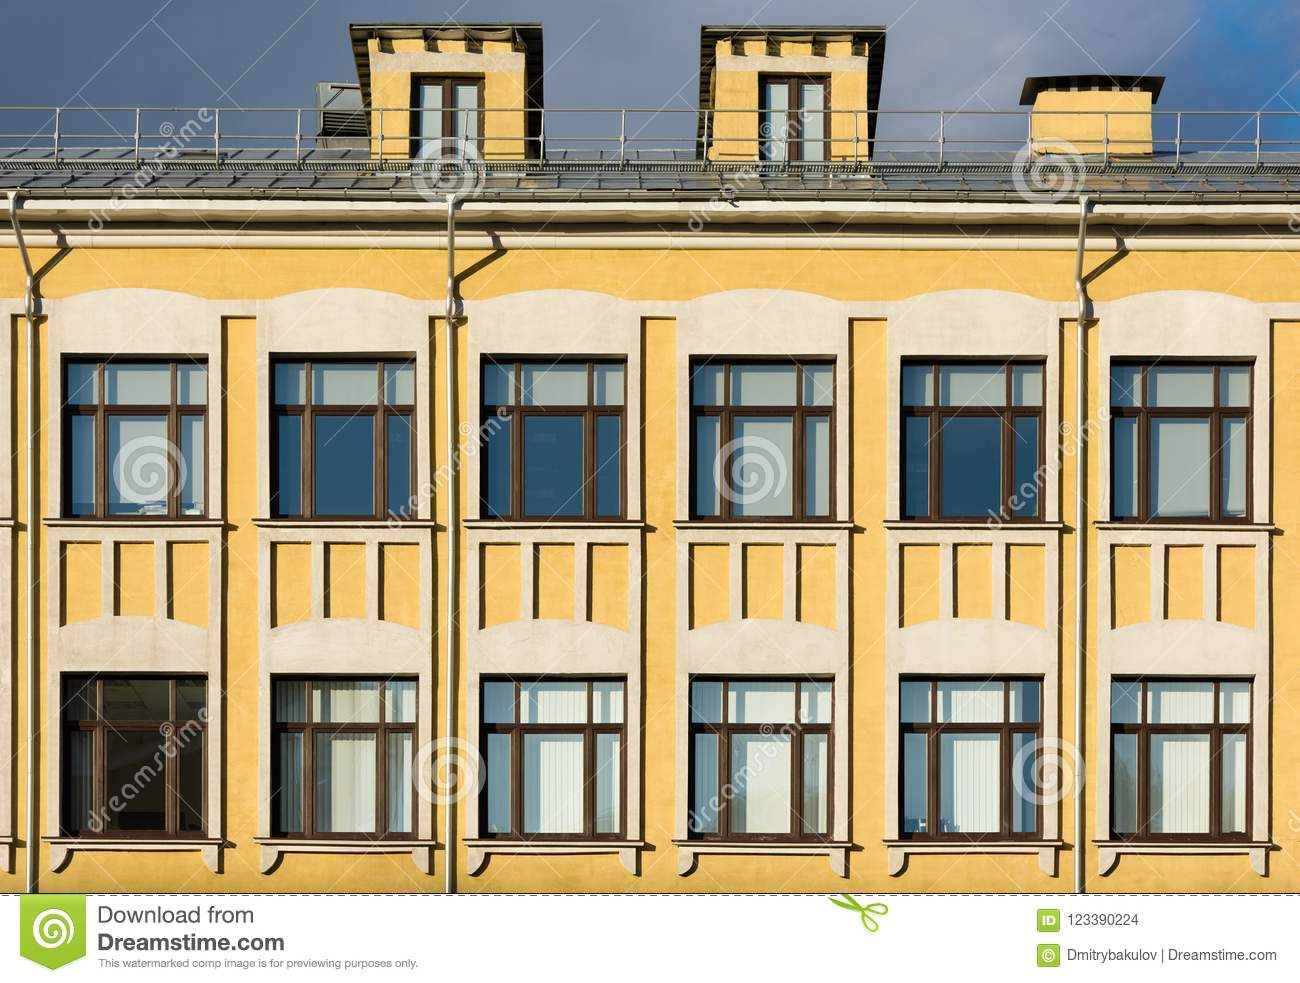 The Facade Of The Old Building With Yellow Walls And White Decor ...